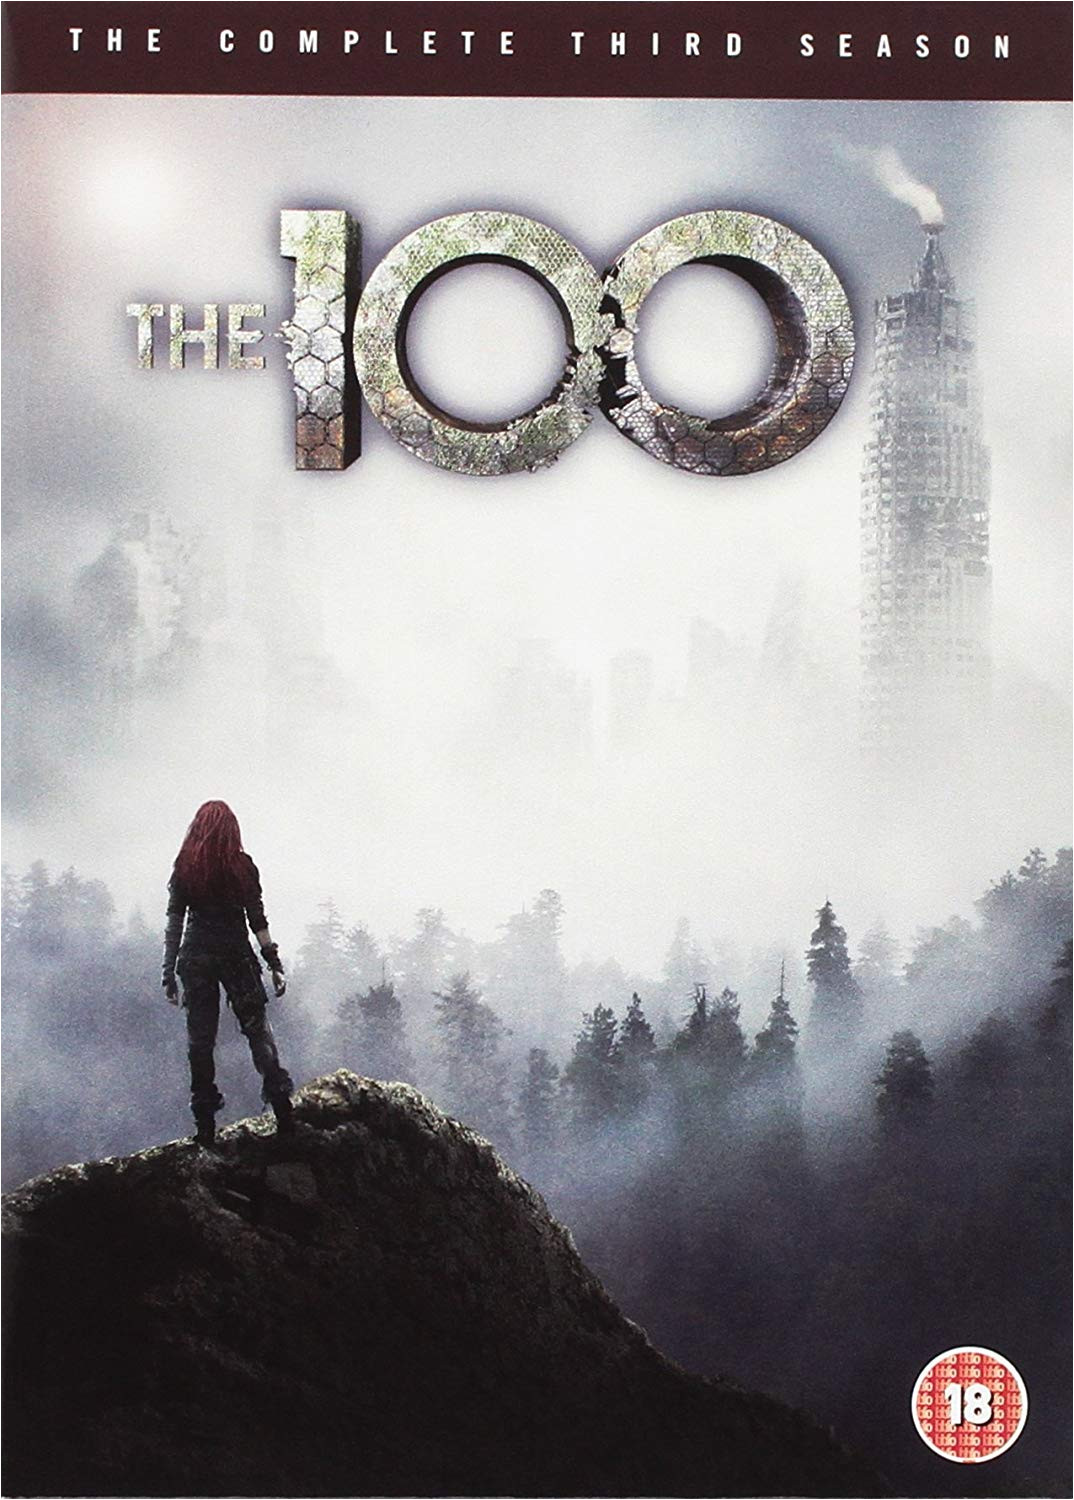 the 100 season 3 dvd 2016 amazon co uk eliza taylor paige turco marie avgeropoulos bob morley dvd blu ray